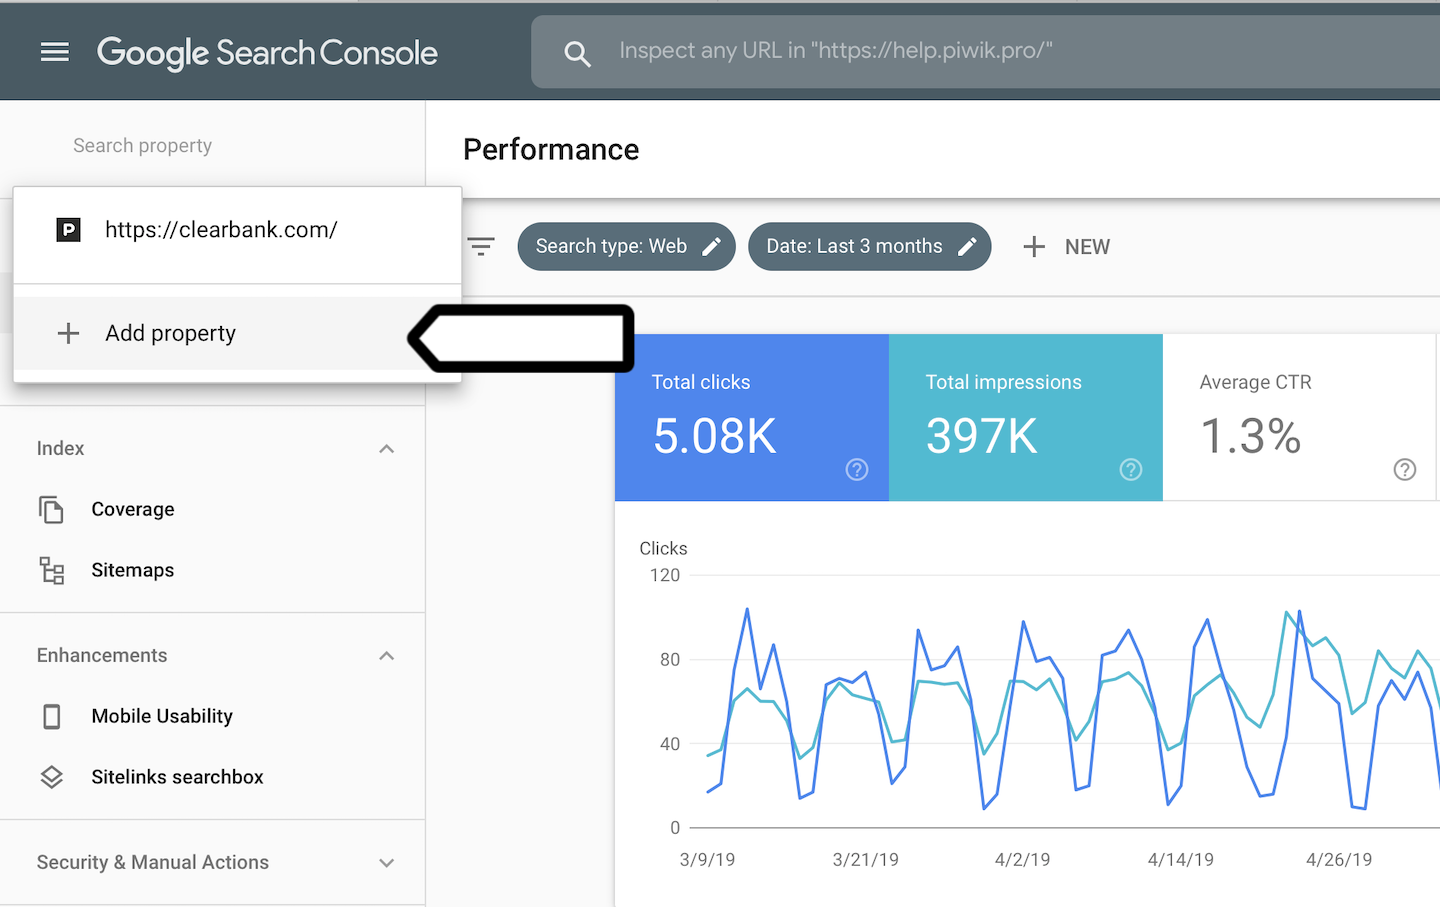 Google Search Console integration in Piwik PRO